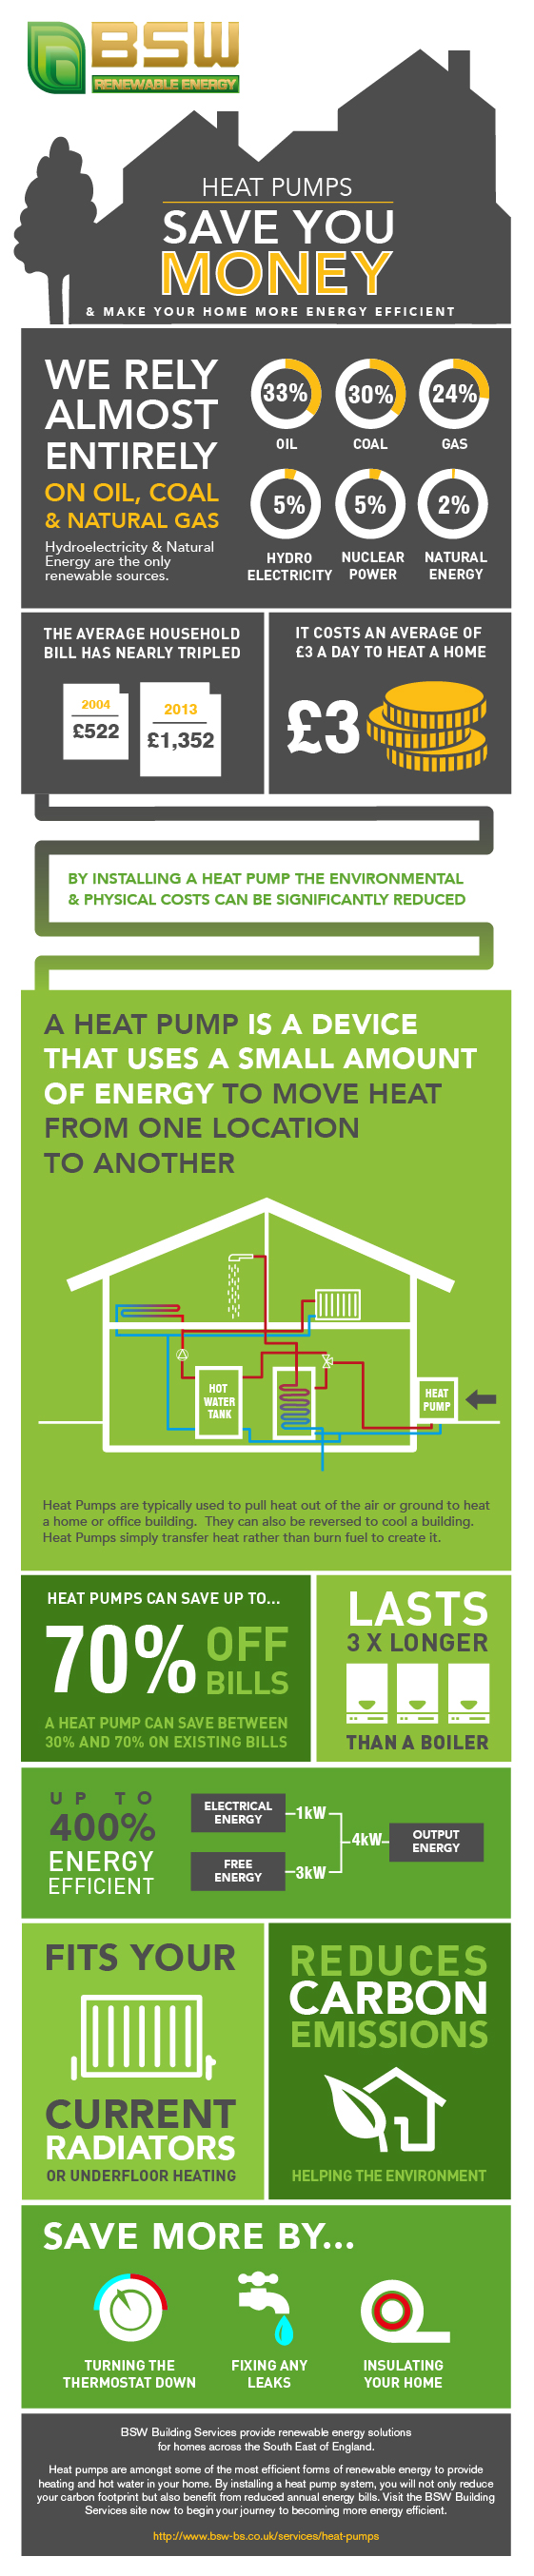 how-heat-pumps-can-save-you-money_51ea8ee88aa45